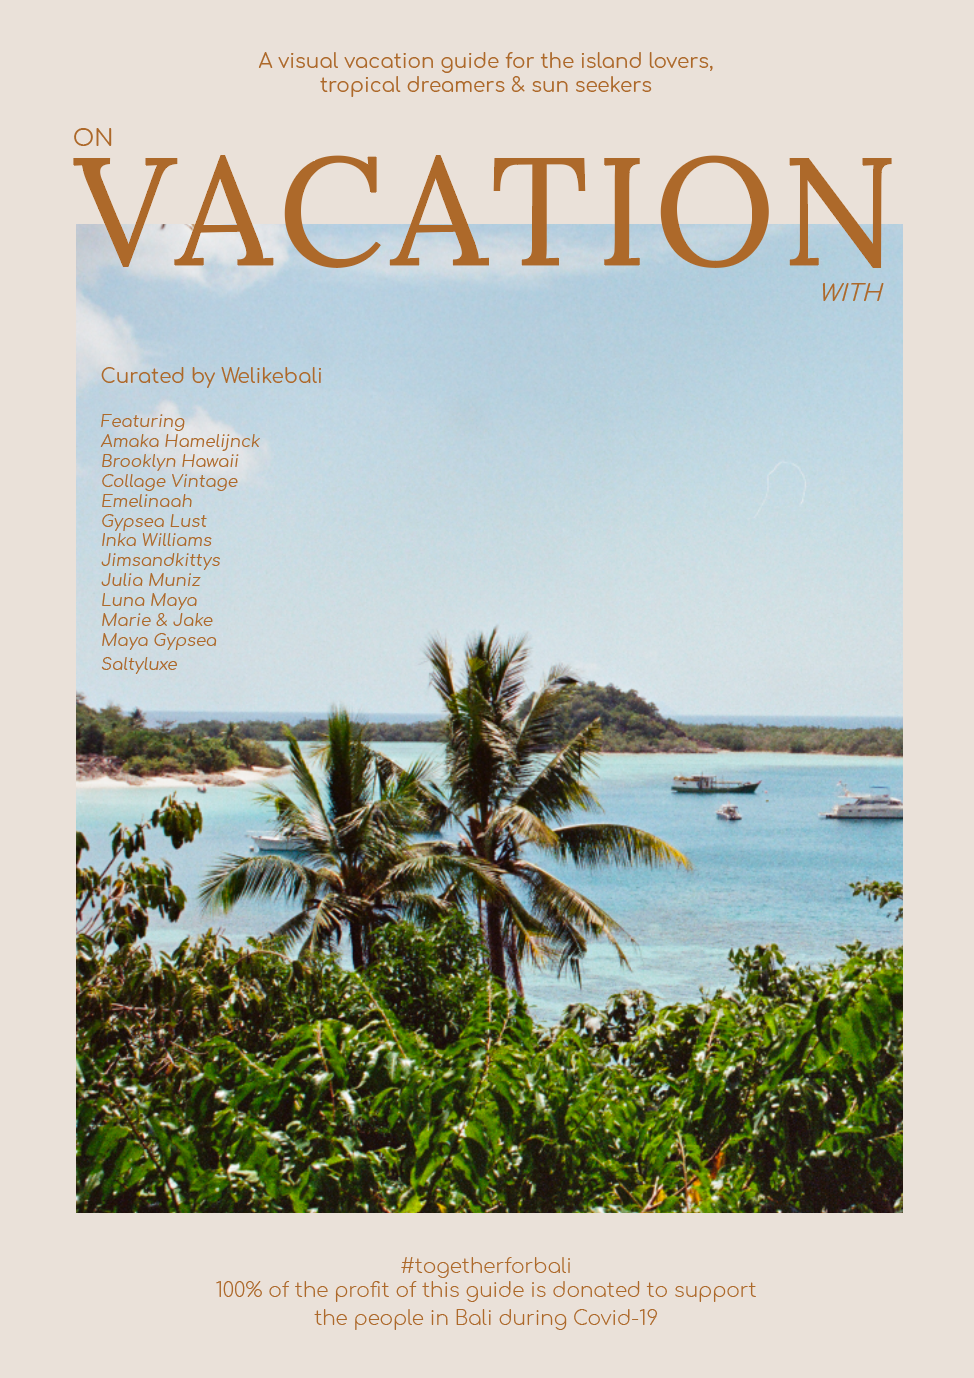 ON VACATION WITH is here on pre-order! 100% profit donation for the people in Bali